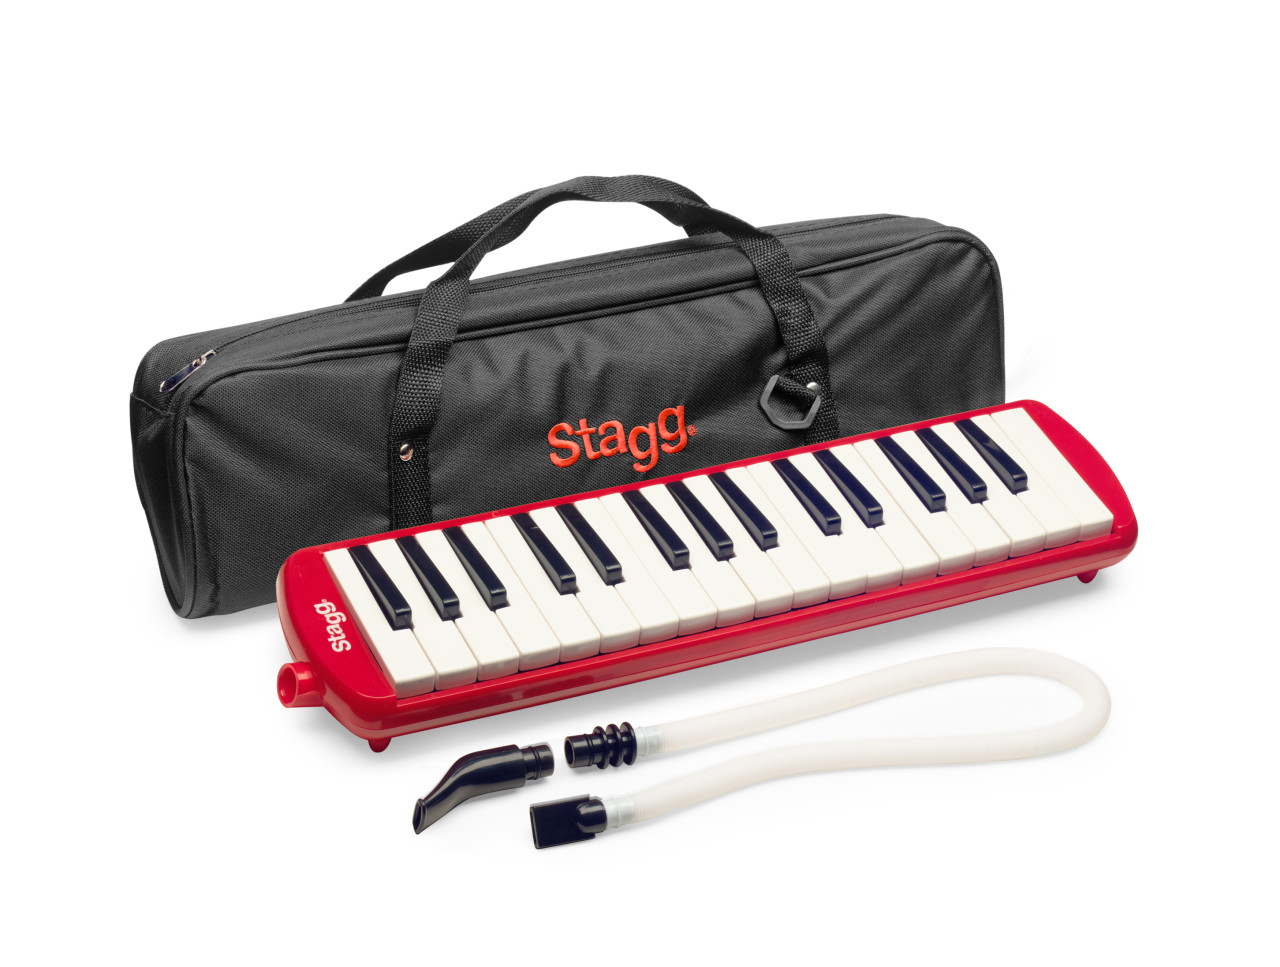 Stagg 32 key melodica with bag MELOSTA32 (various colours)